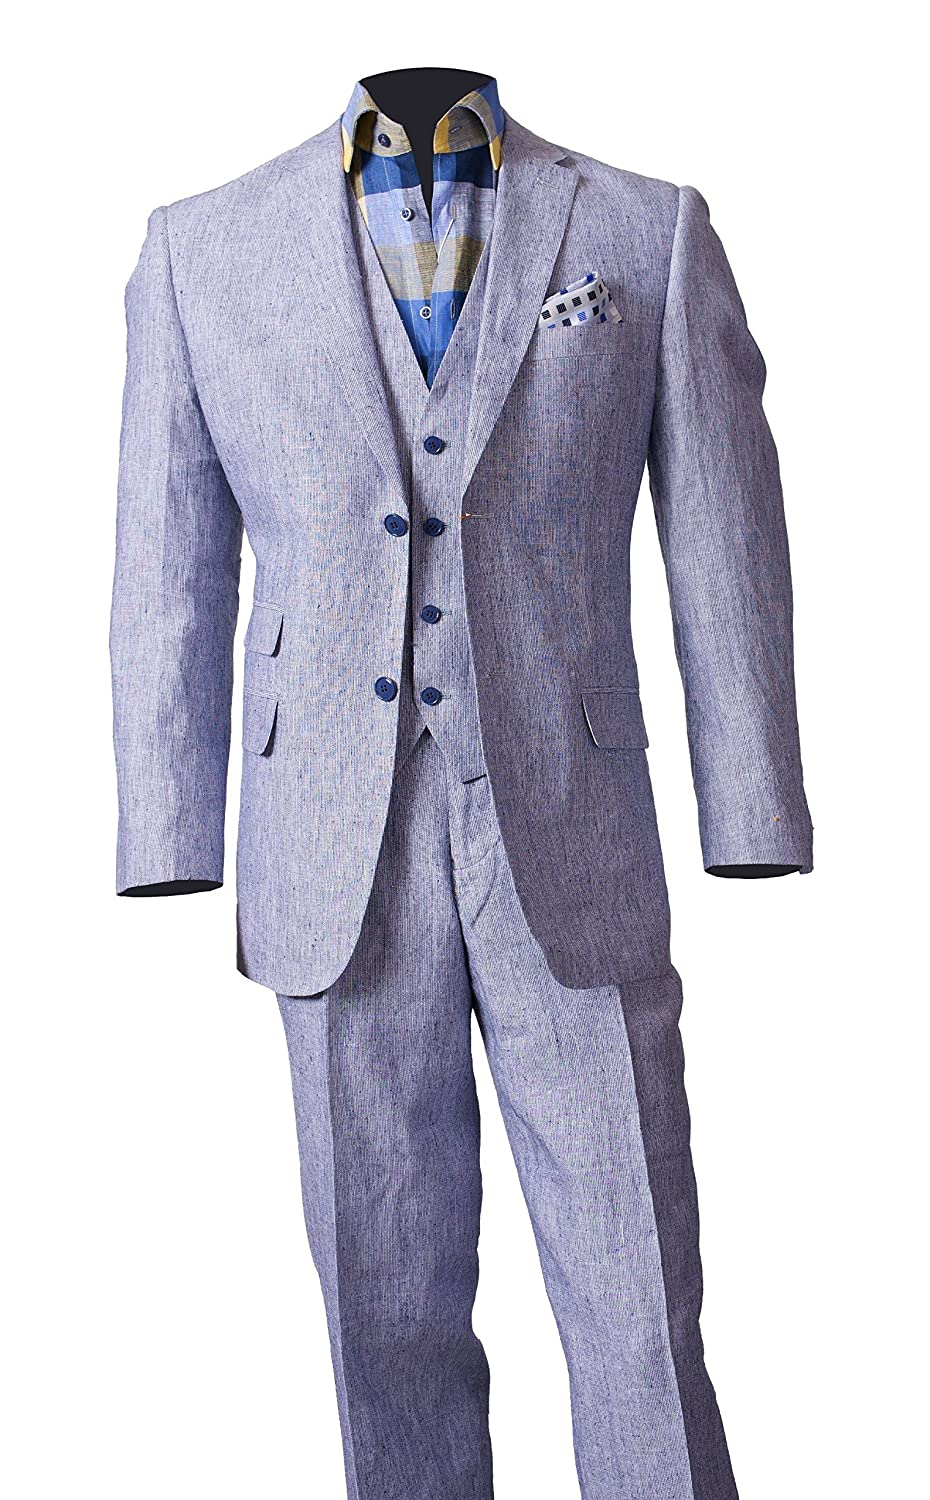 100% Linen Three-Piece Suit Sport Coat Jacket and Flat Front Pants Style